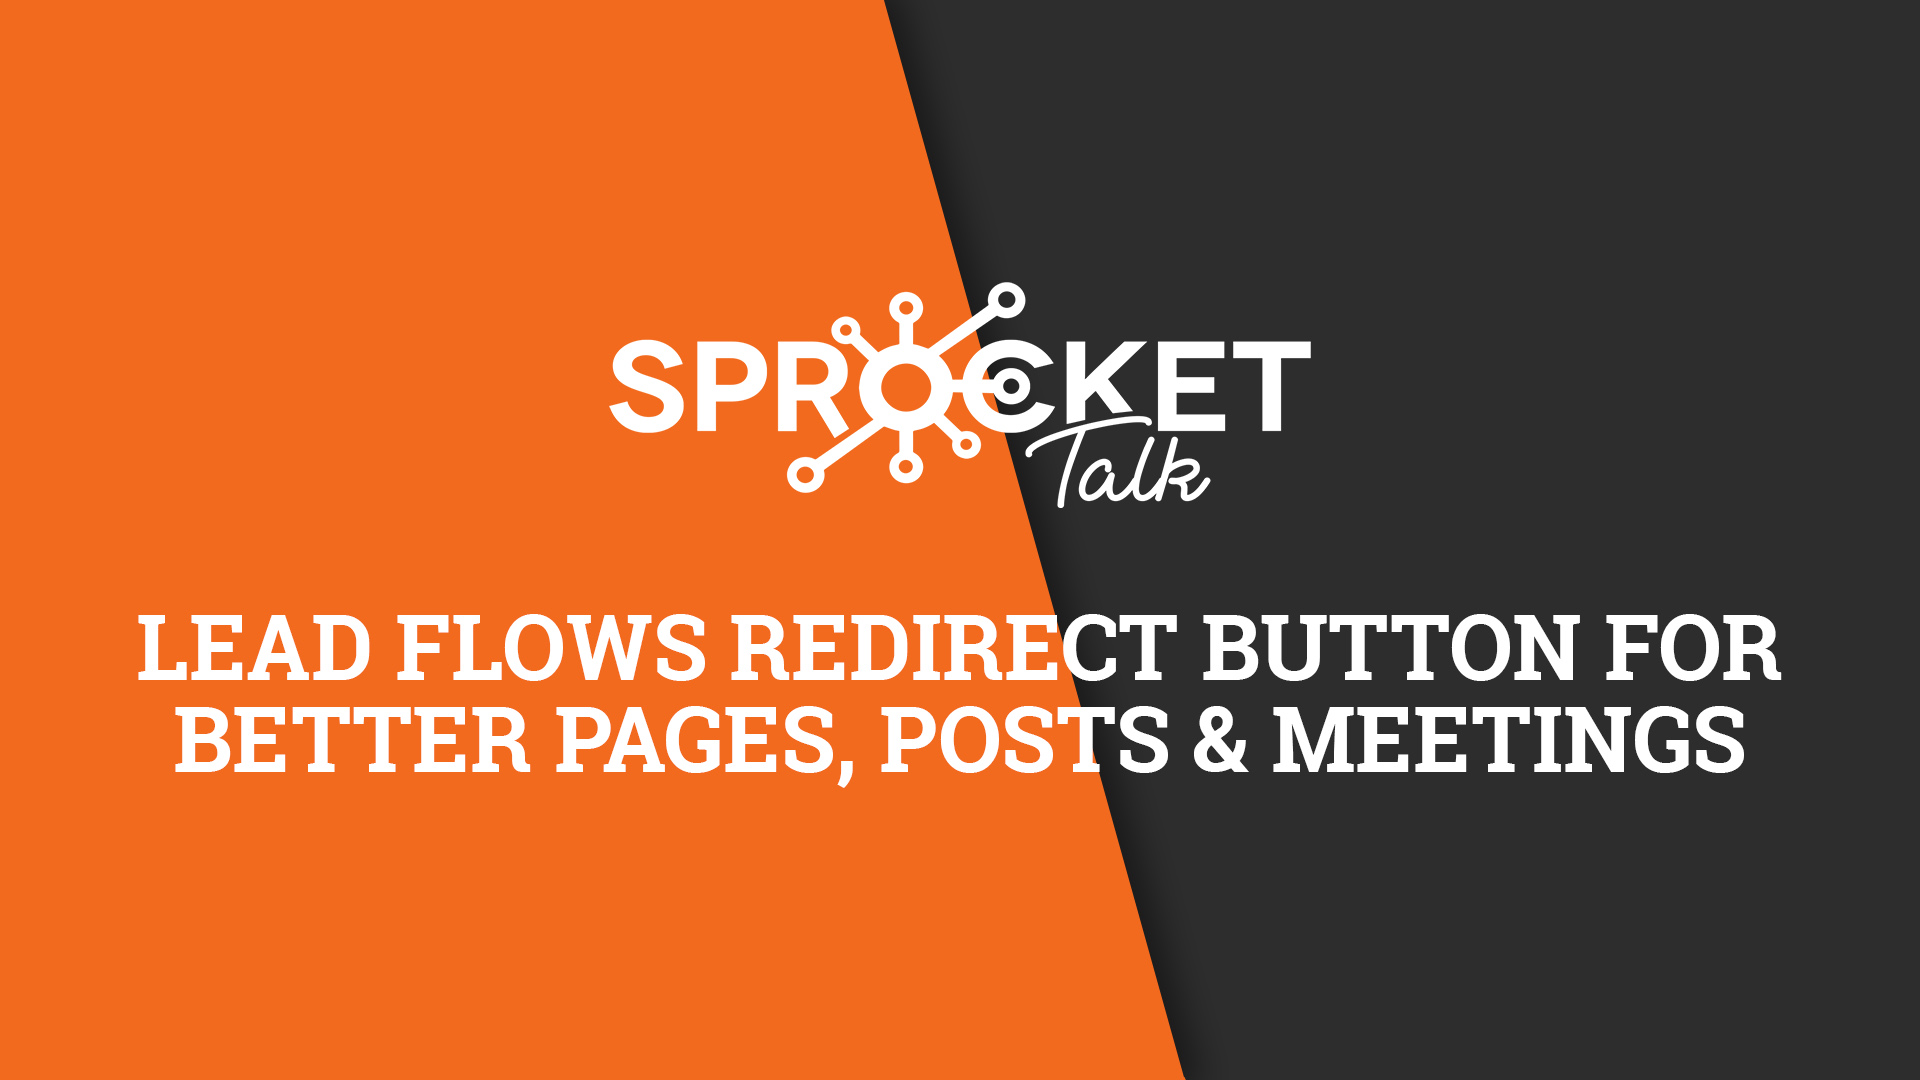 Lead Flows Redirect Button for Better Pages, Posts & Meetings